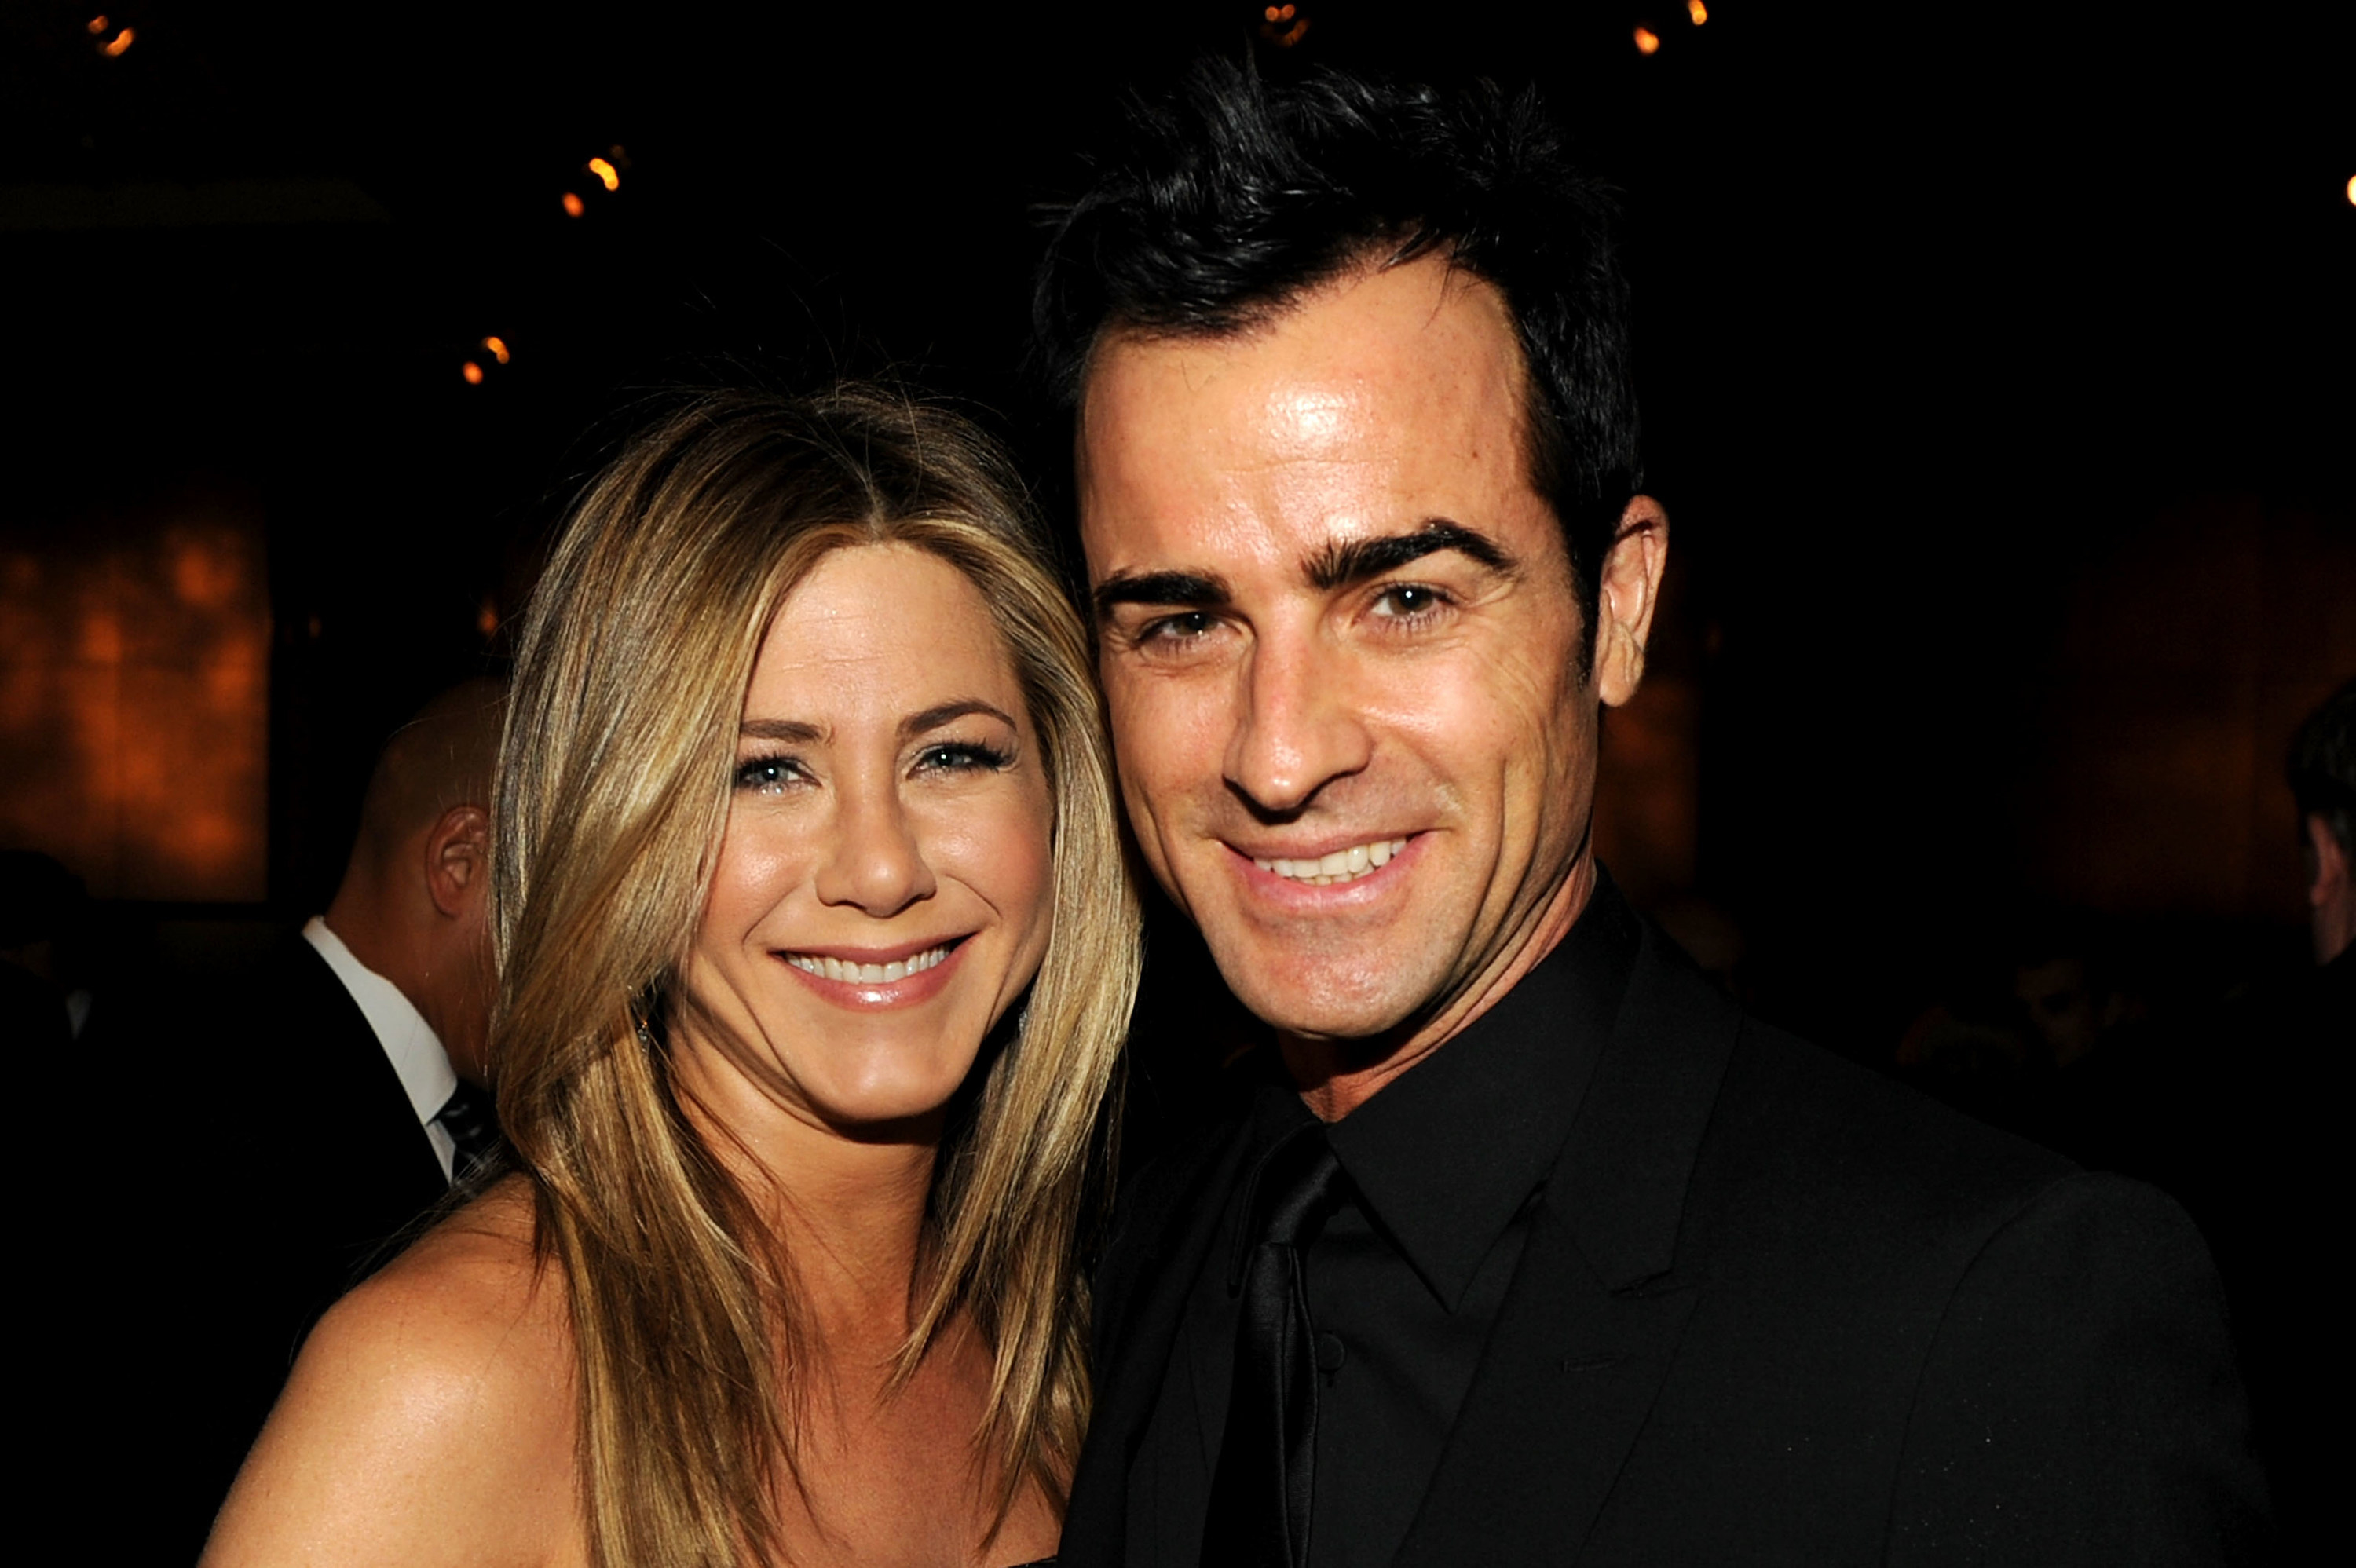 Aniston and Theroux at the Directors Guild of America Awards cocktail reception in 2012